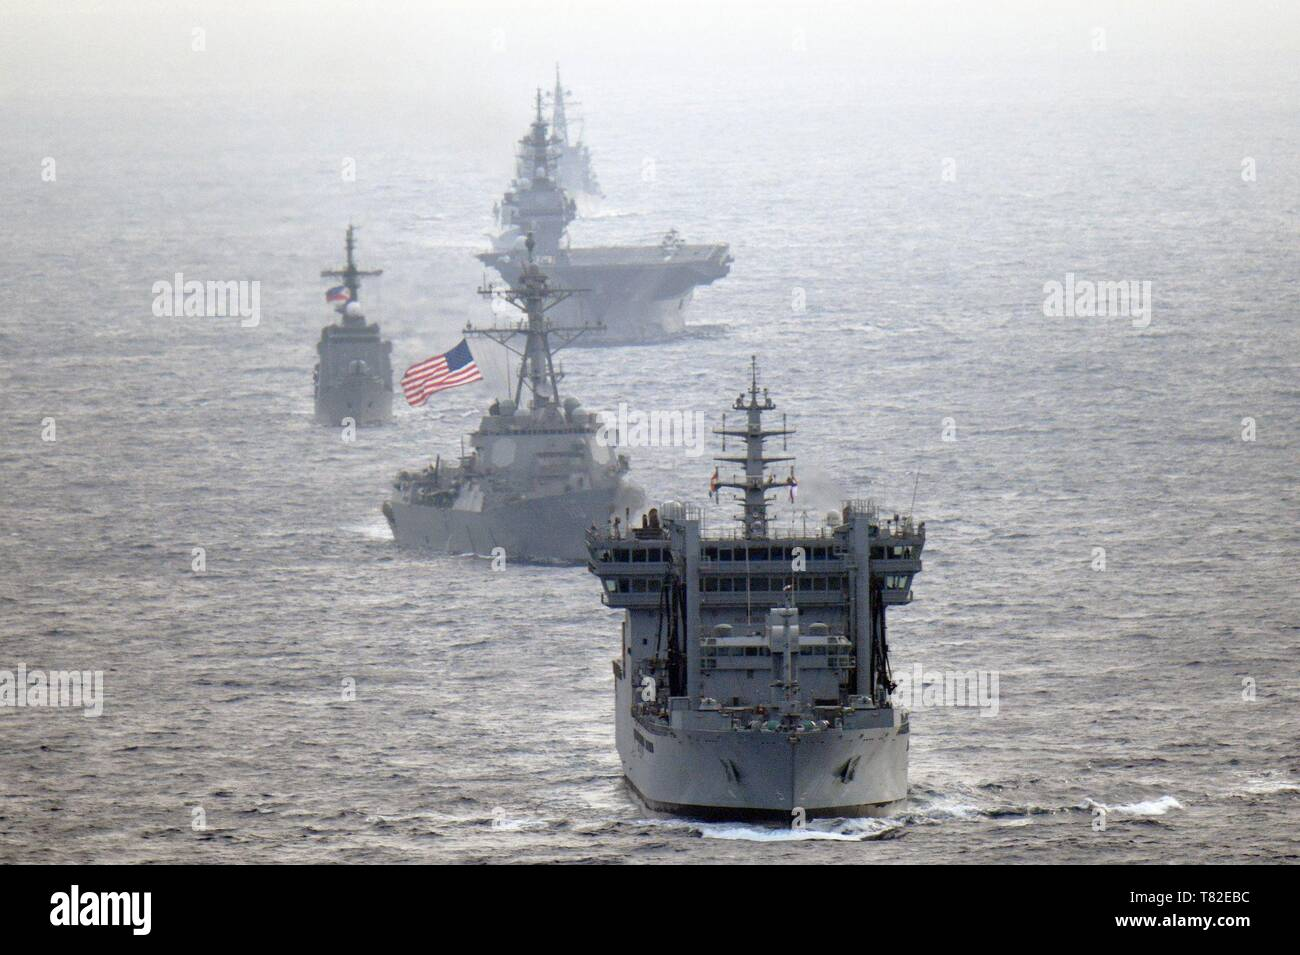 190505-N-XX012-0005 SOUTH CHINA SEA (May 5, 2019) The U.S. Navy guided-missile destroyer USS William P. Lawrence (DDG 110), center, transits international waters of the South China Sea with the Indian navy destroyer INS Kolkata (D 63) and tanker INS Shakti (A 57); the Japan Maritime Self-Defense Force helicopter carrier JS Izumo (DDH 183) and destroyer JS Murasame (DD 101); and the Republic of the Philippines navy patrol ship BRP Andres Bonifacio (PS 17). (U.S. Navy photo courtesy of the Japan Maritime Self-Defense Force/Released) - Stock Image